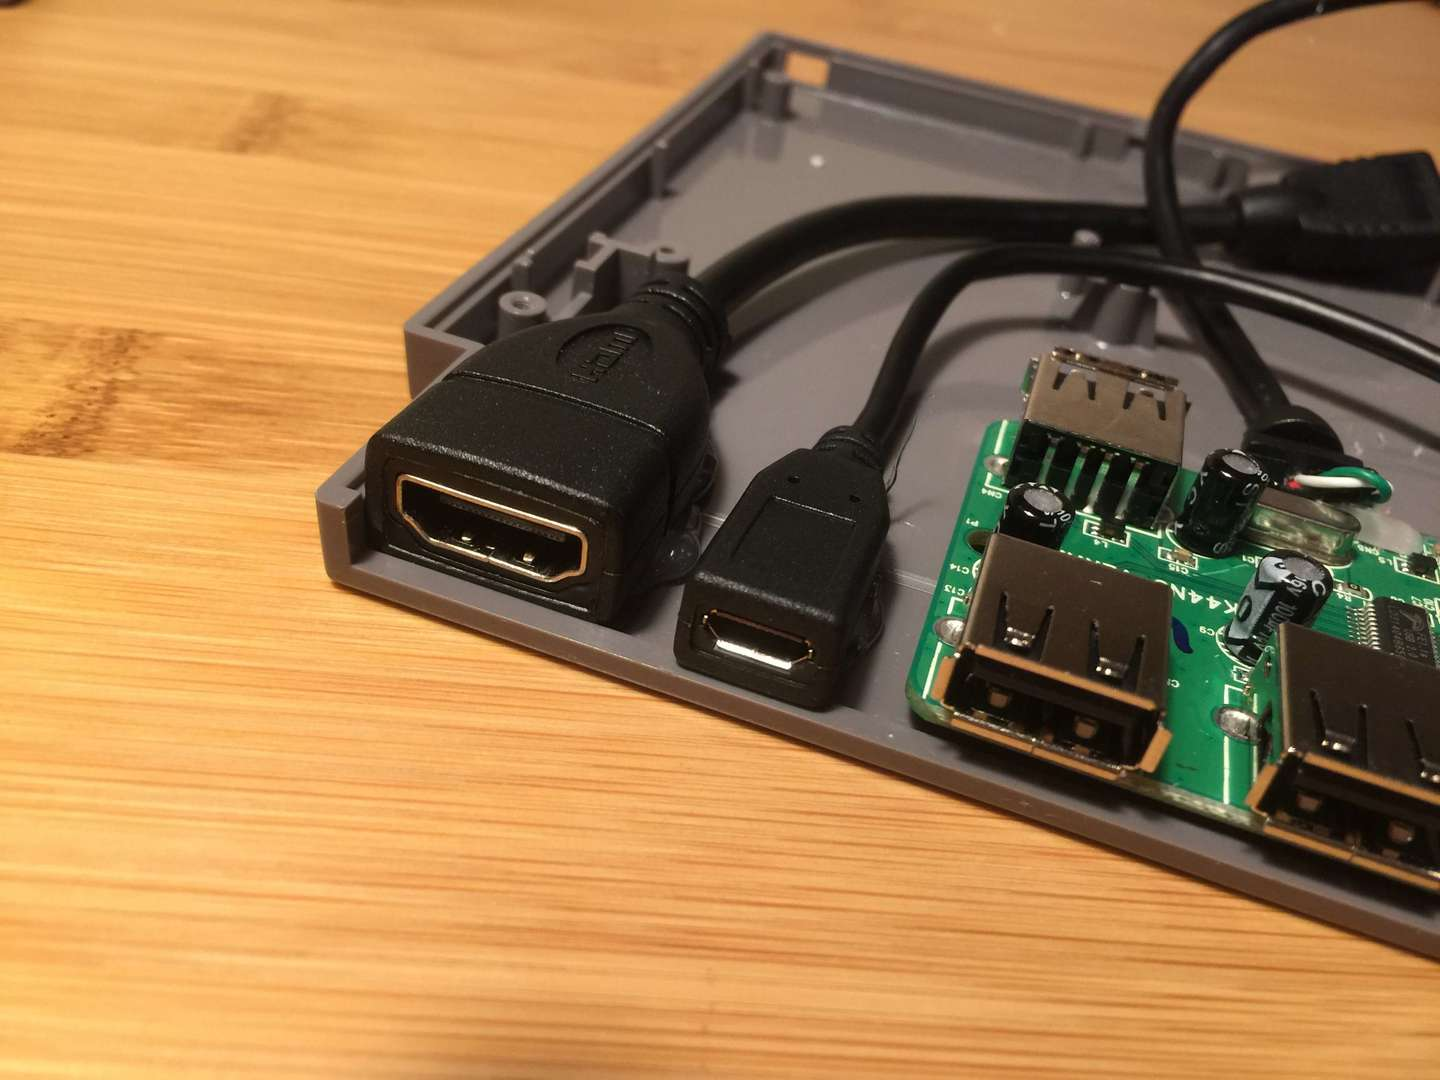 The Pi Cart ports